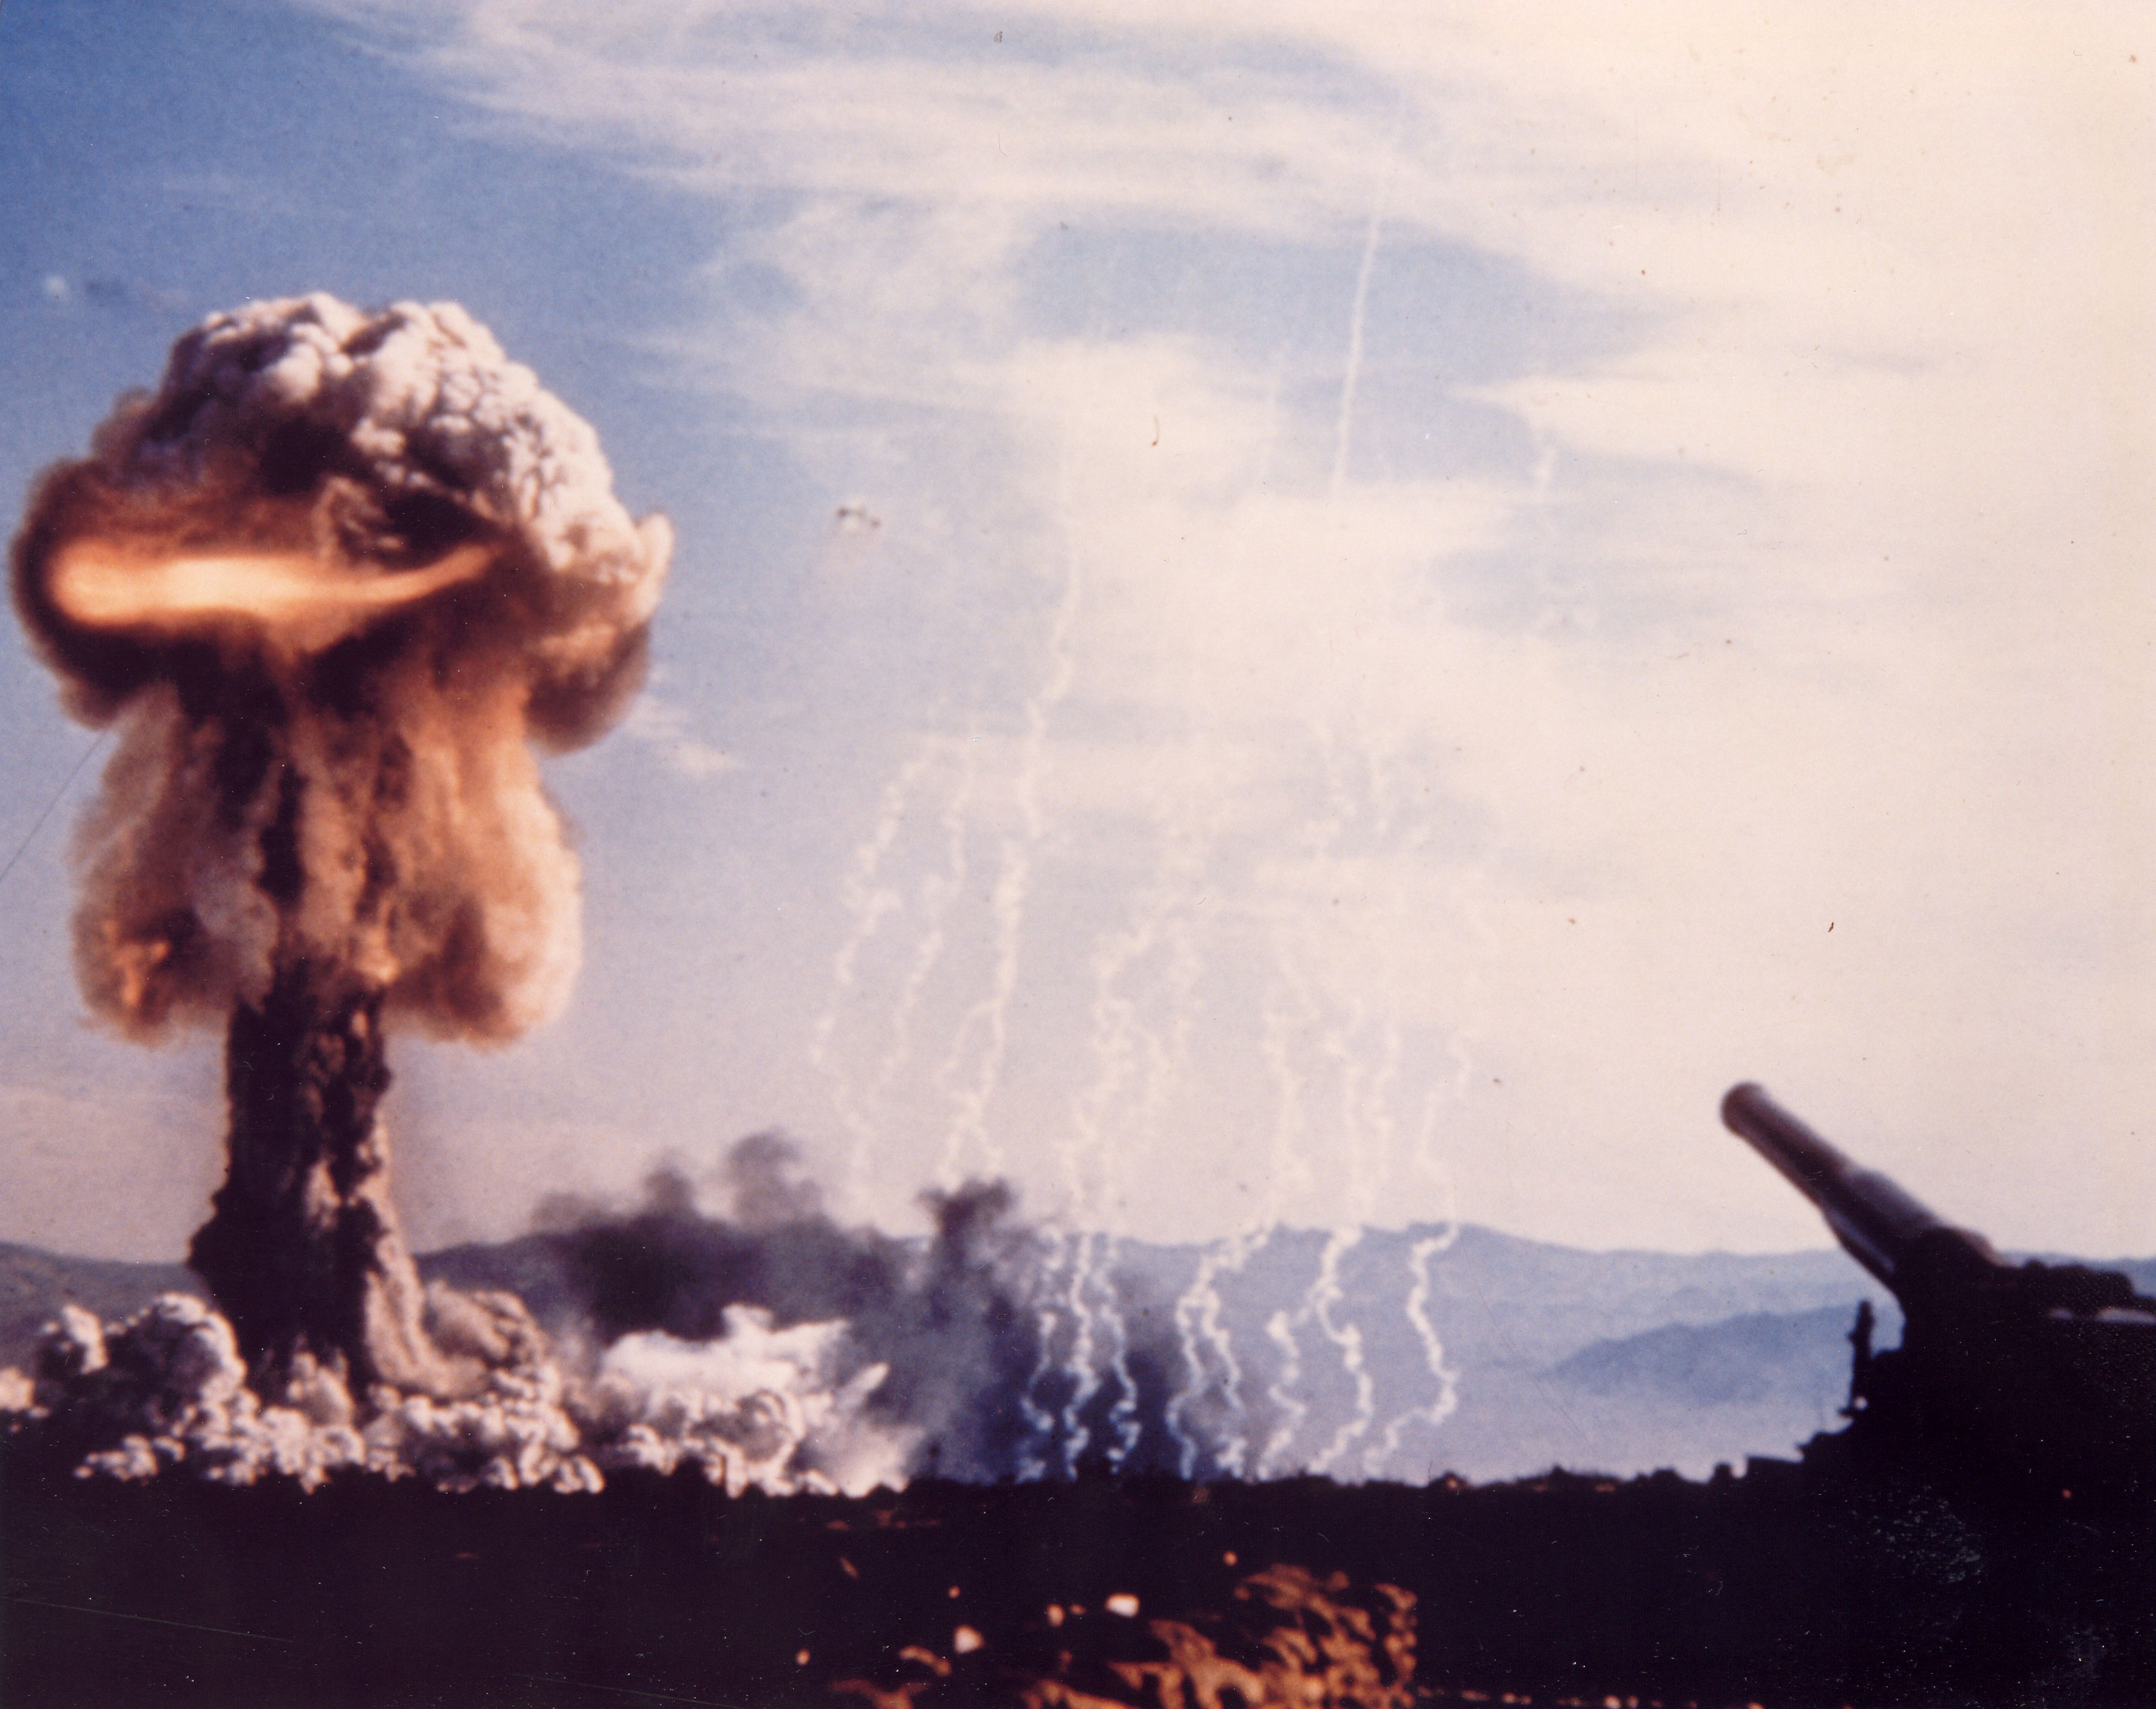 Upshot-Knothole Grable nuclear artillery firing test